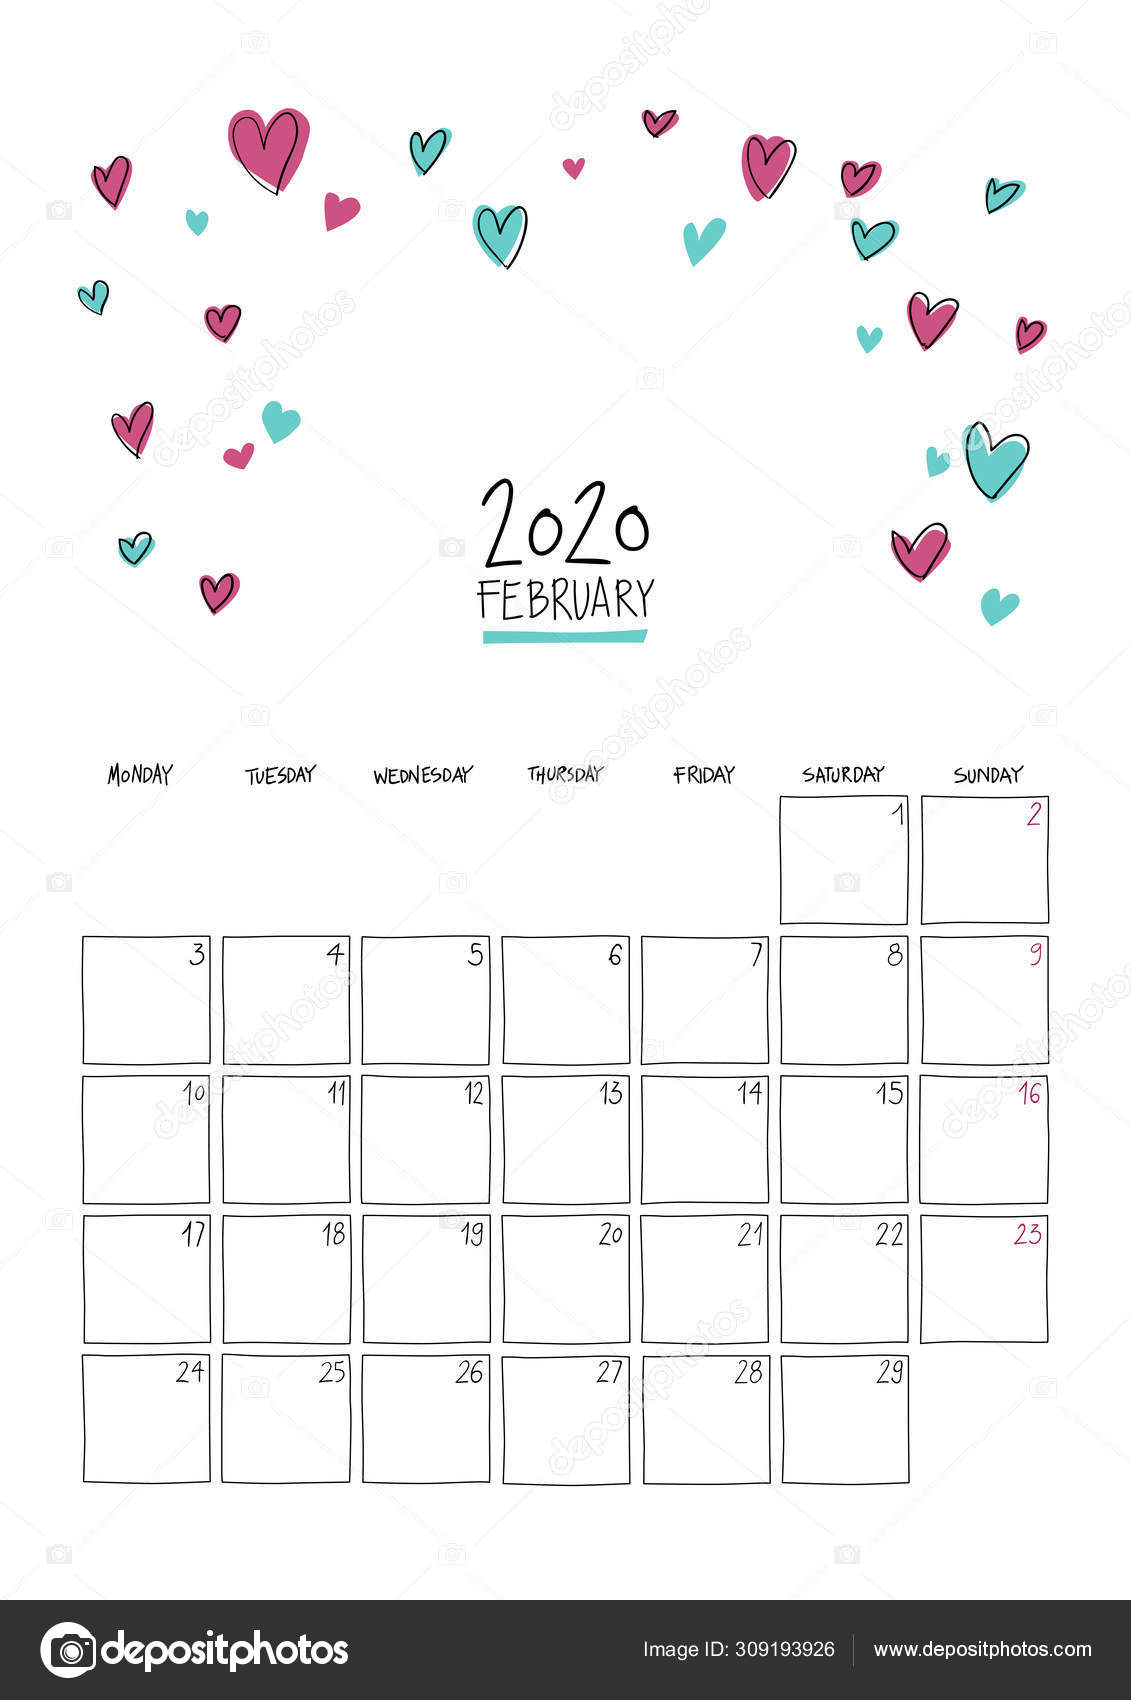 February 2020 Doodle Wall Calendar. — Stock Vector